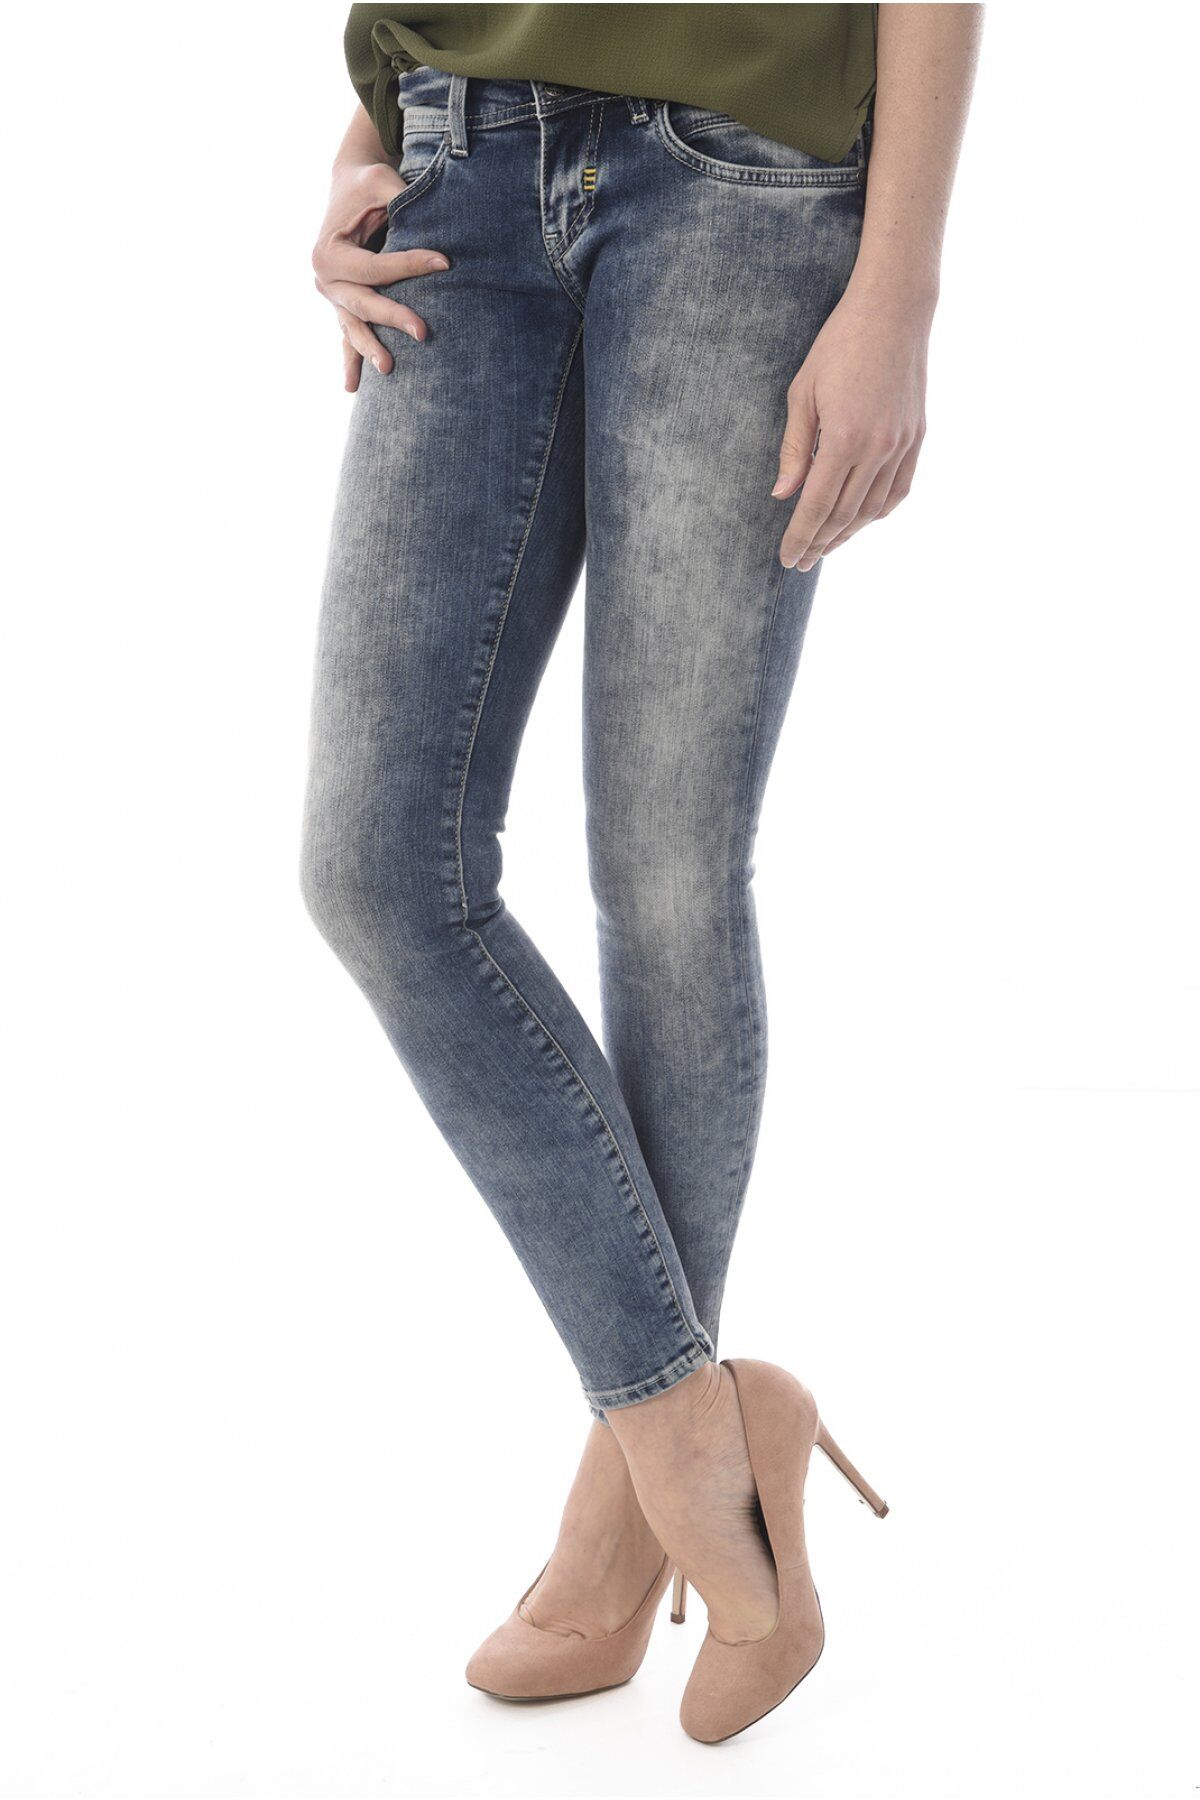 Jean Skinny Stretch Maryon  - Meltin'pot